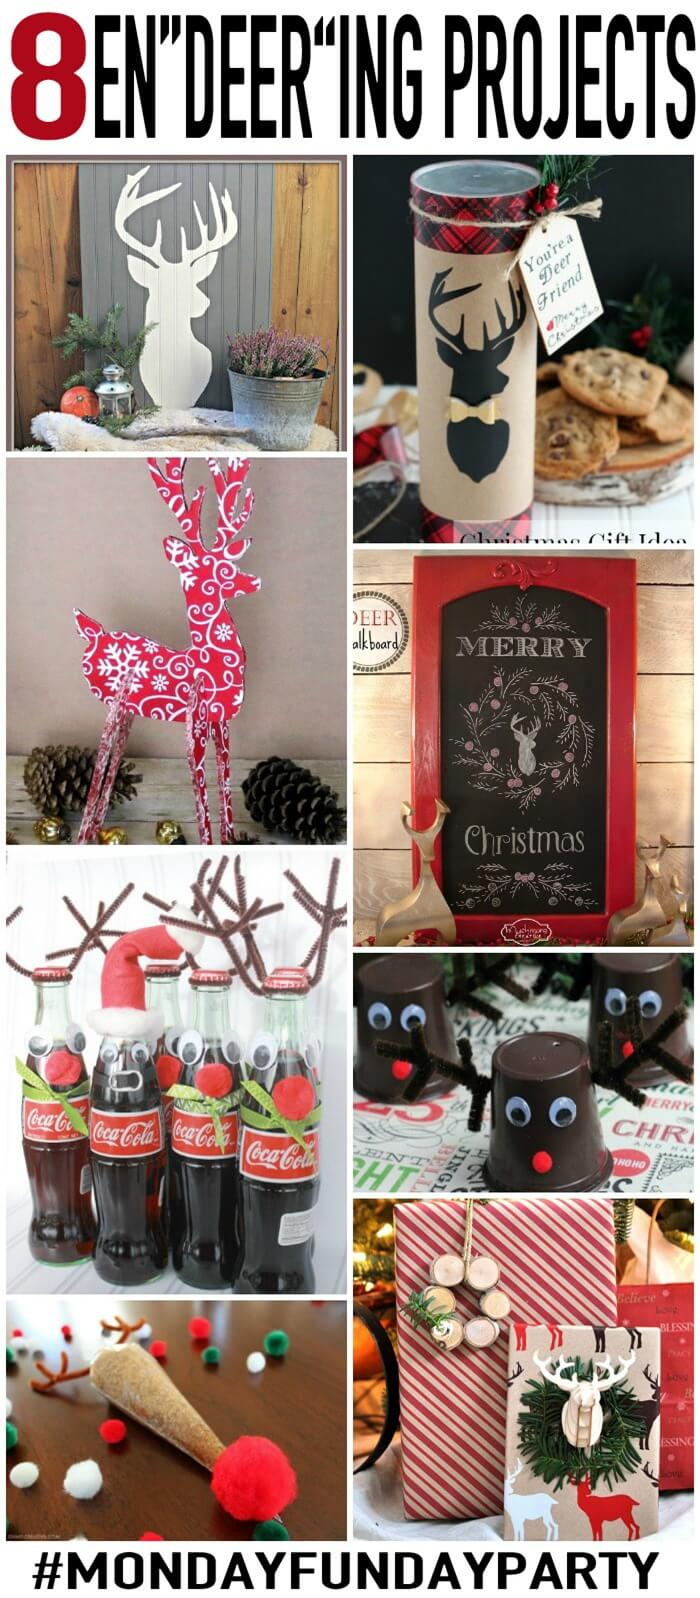 8 Deer Projects at thatswhatchesaid.com